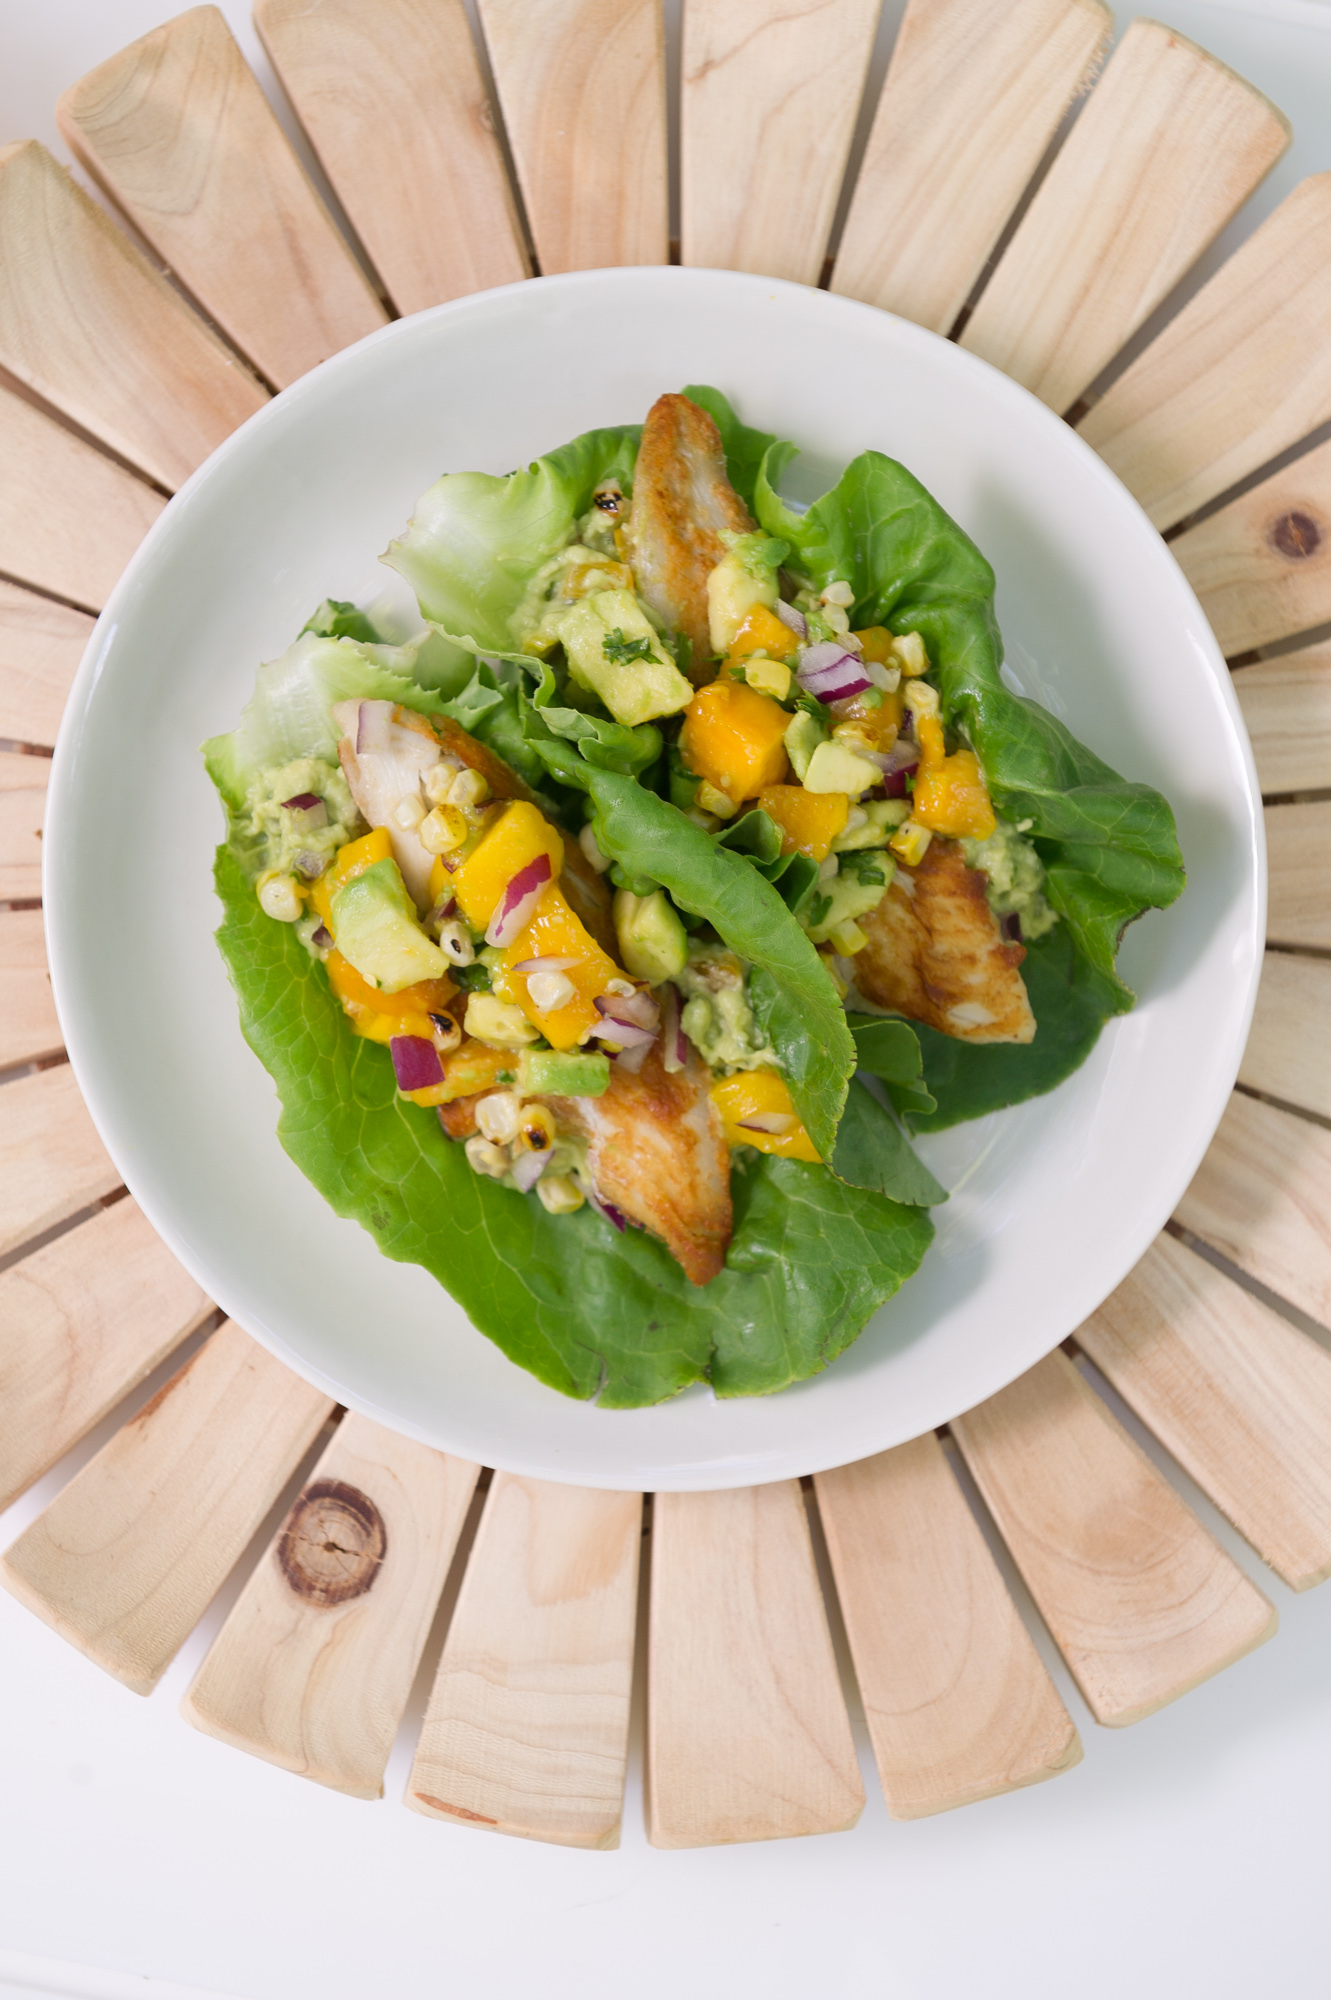 Tropical Fish Tacos wrapped in lettuce leaves. Dairy free, Pescetarian, Gluten free.